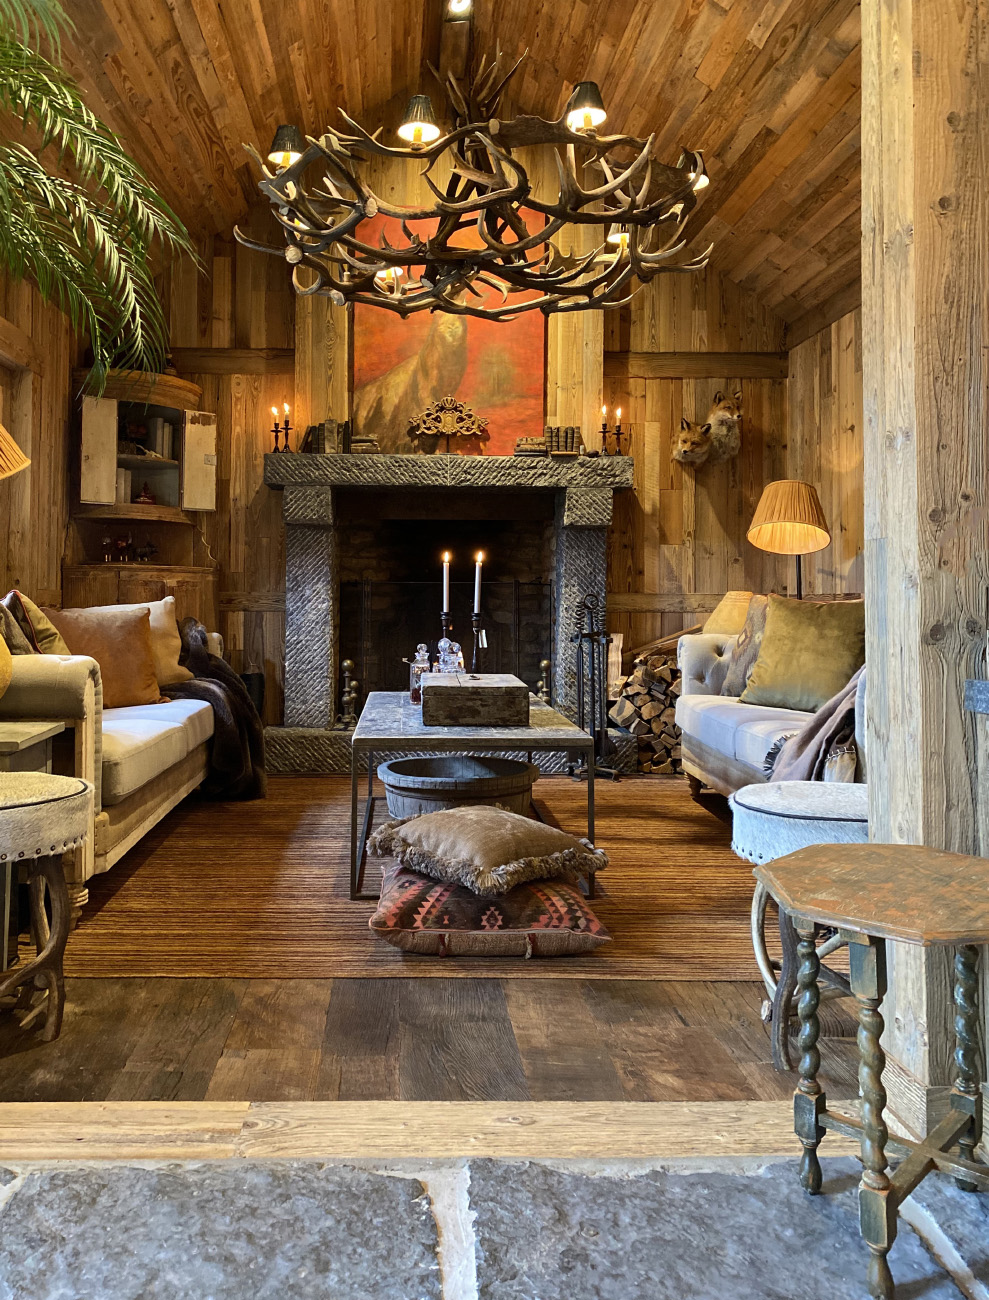 Guest house interior rustic